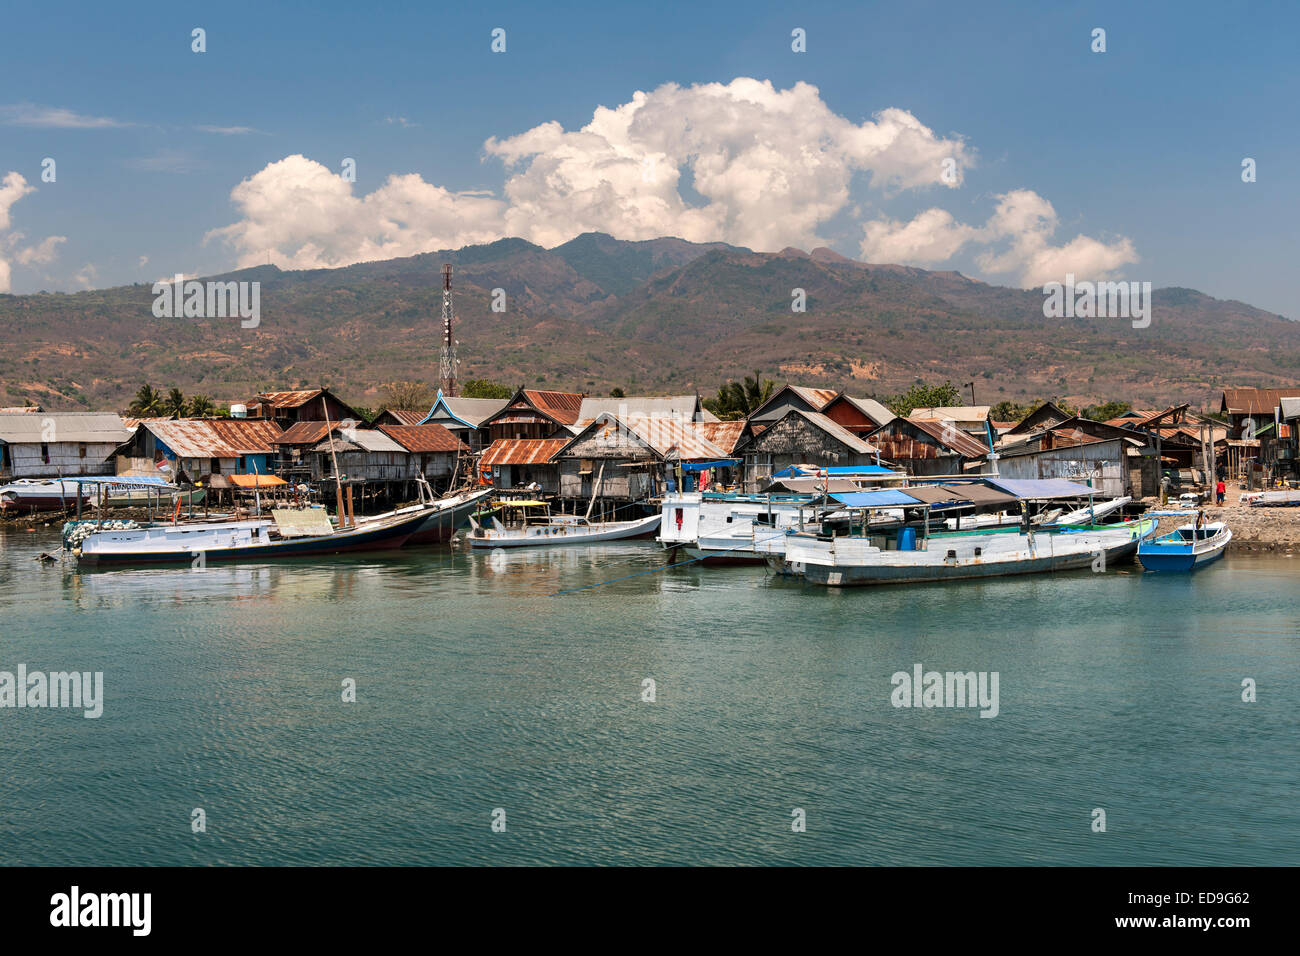 Wuring fishing village near Maumere on Flores island, Indonesia. Stock Photo